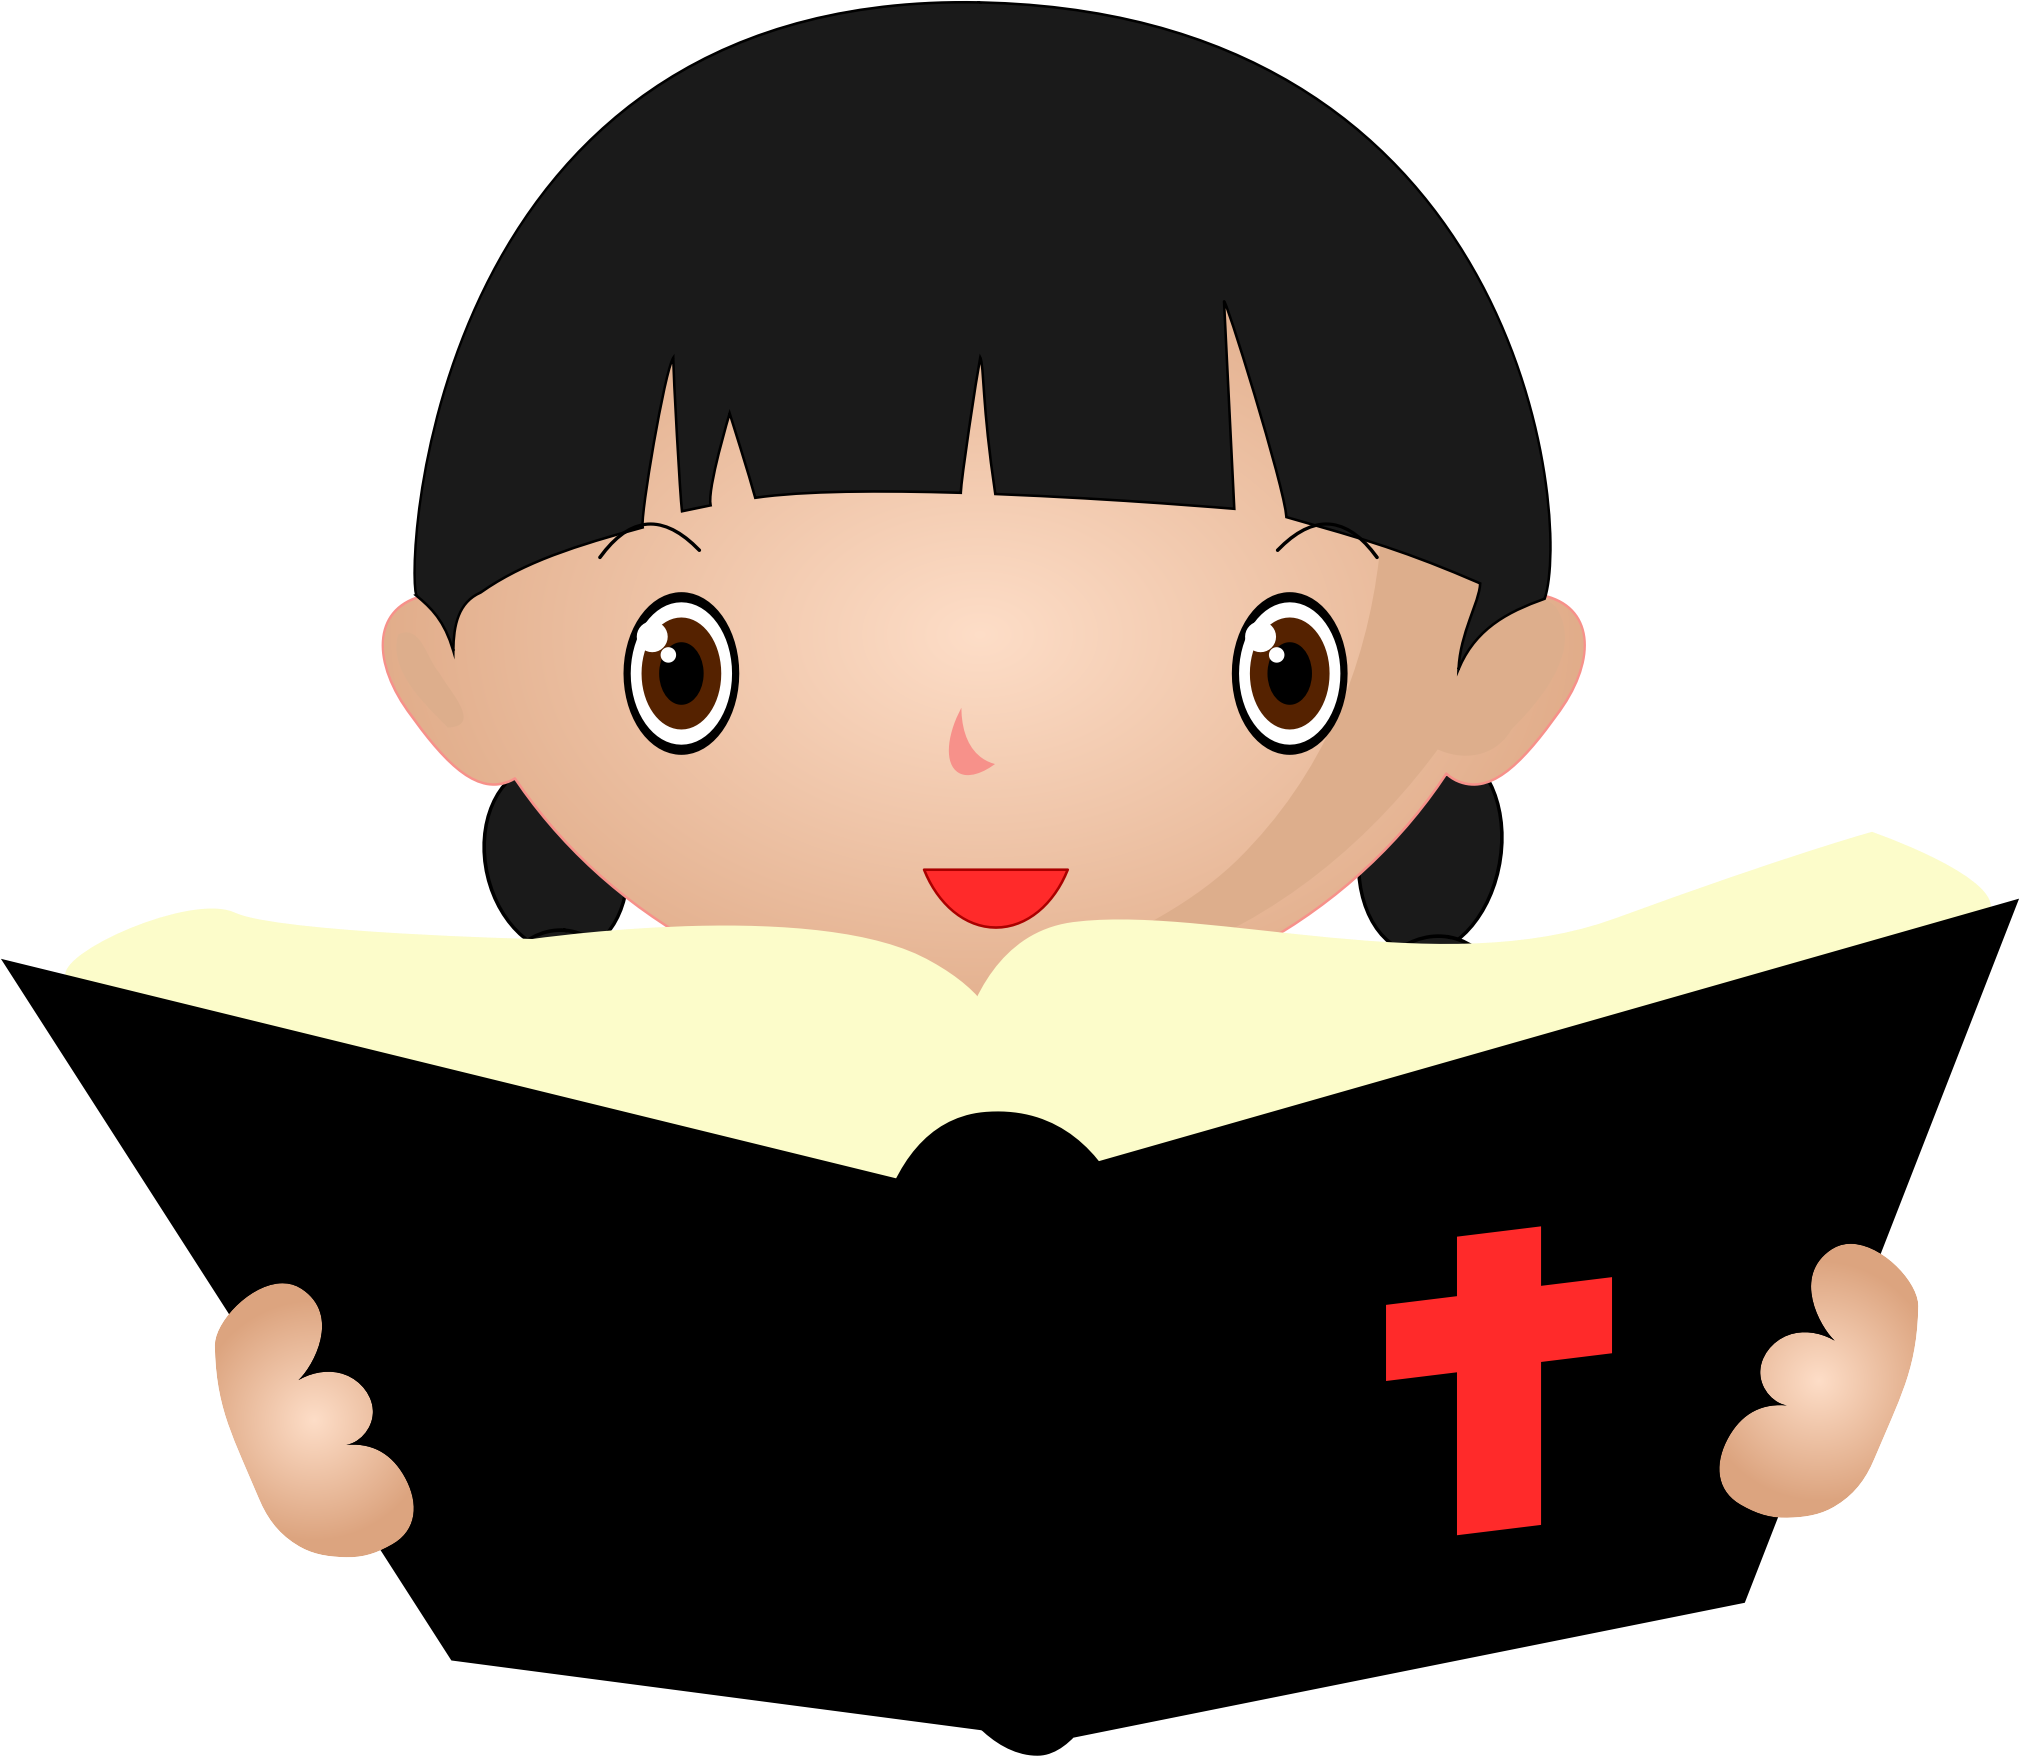 2020x1756 Girl Studying The Bible Vector Clipart Image